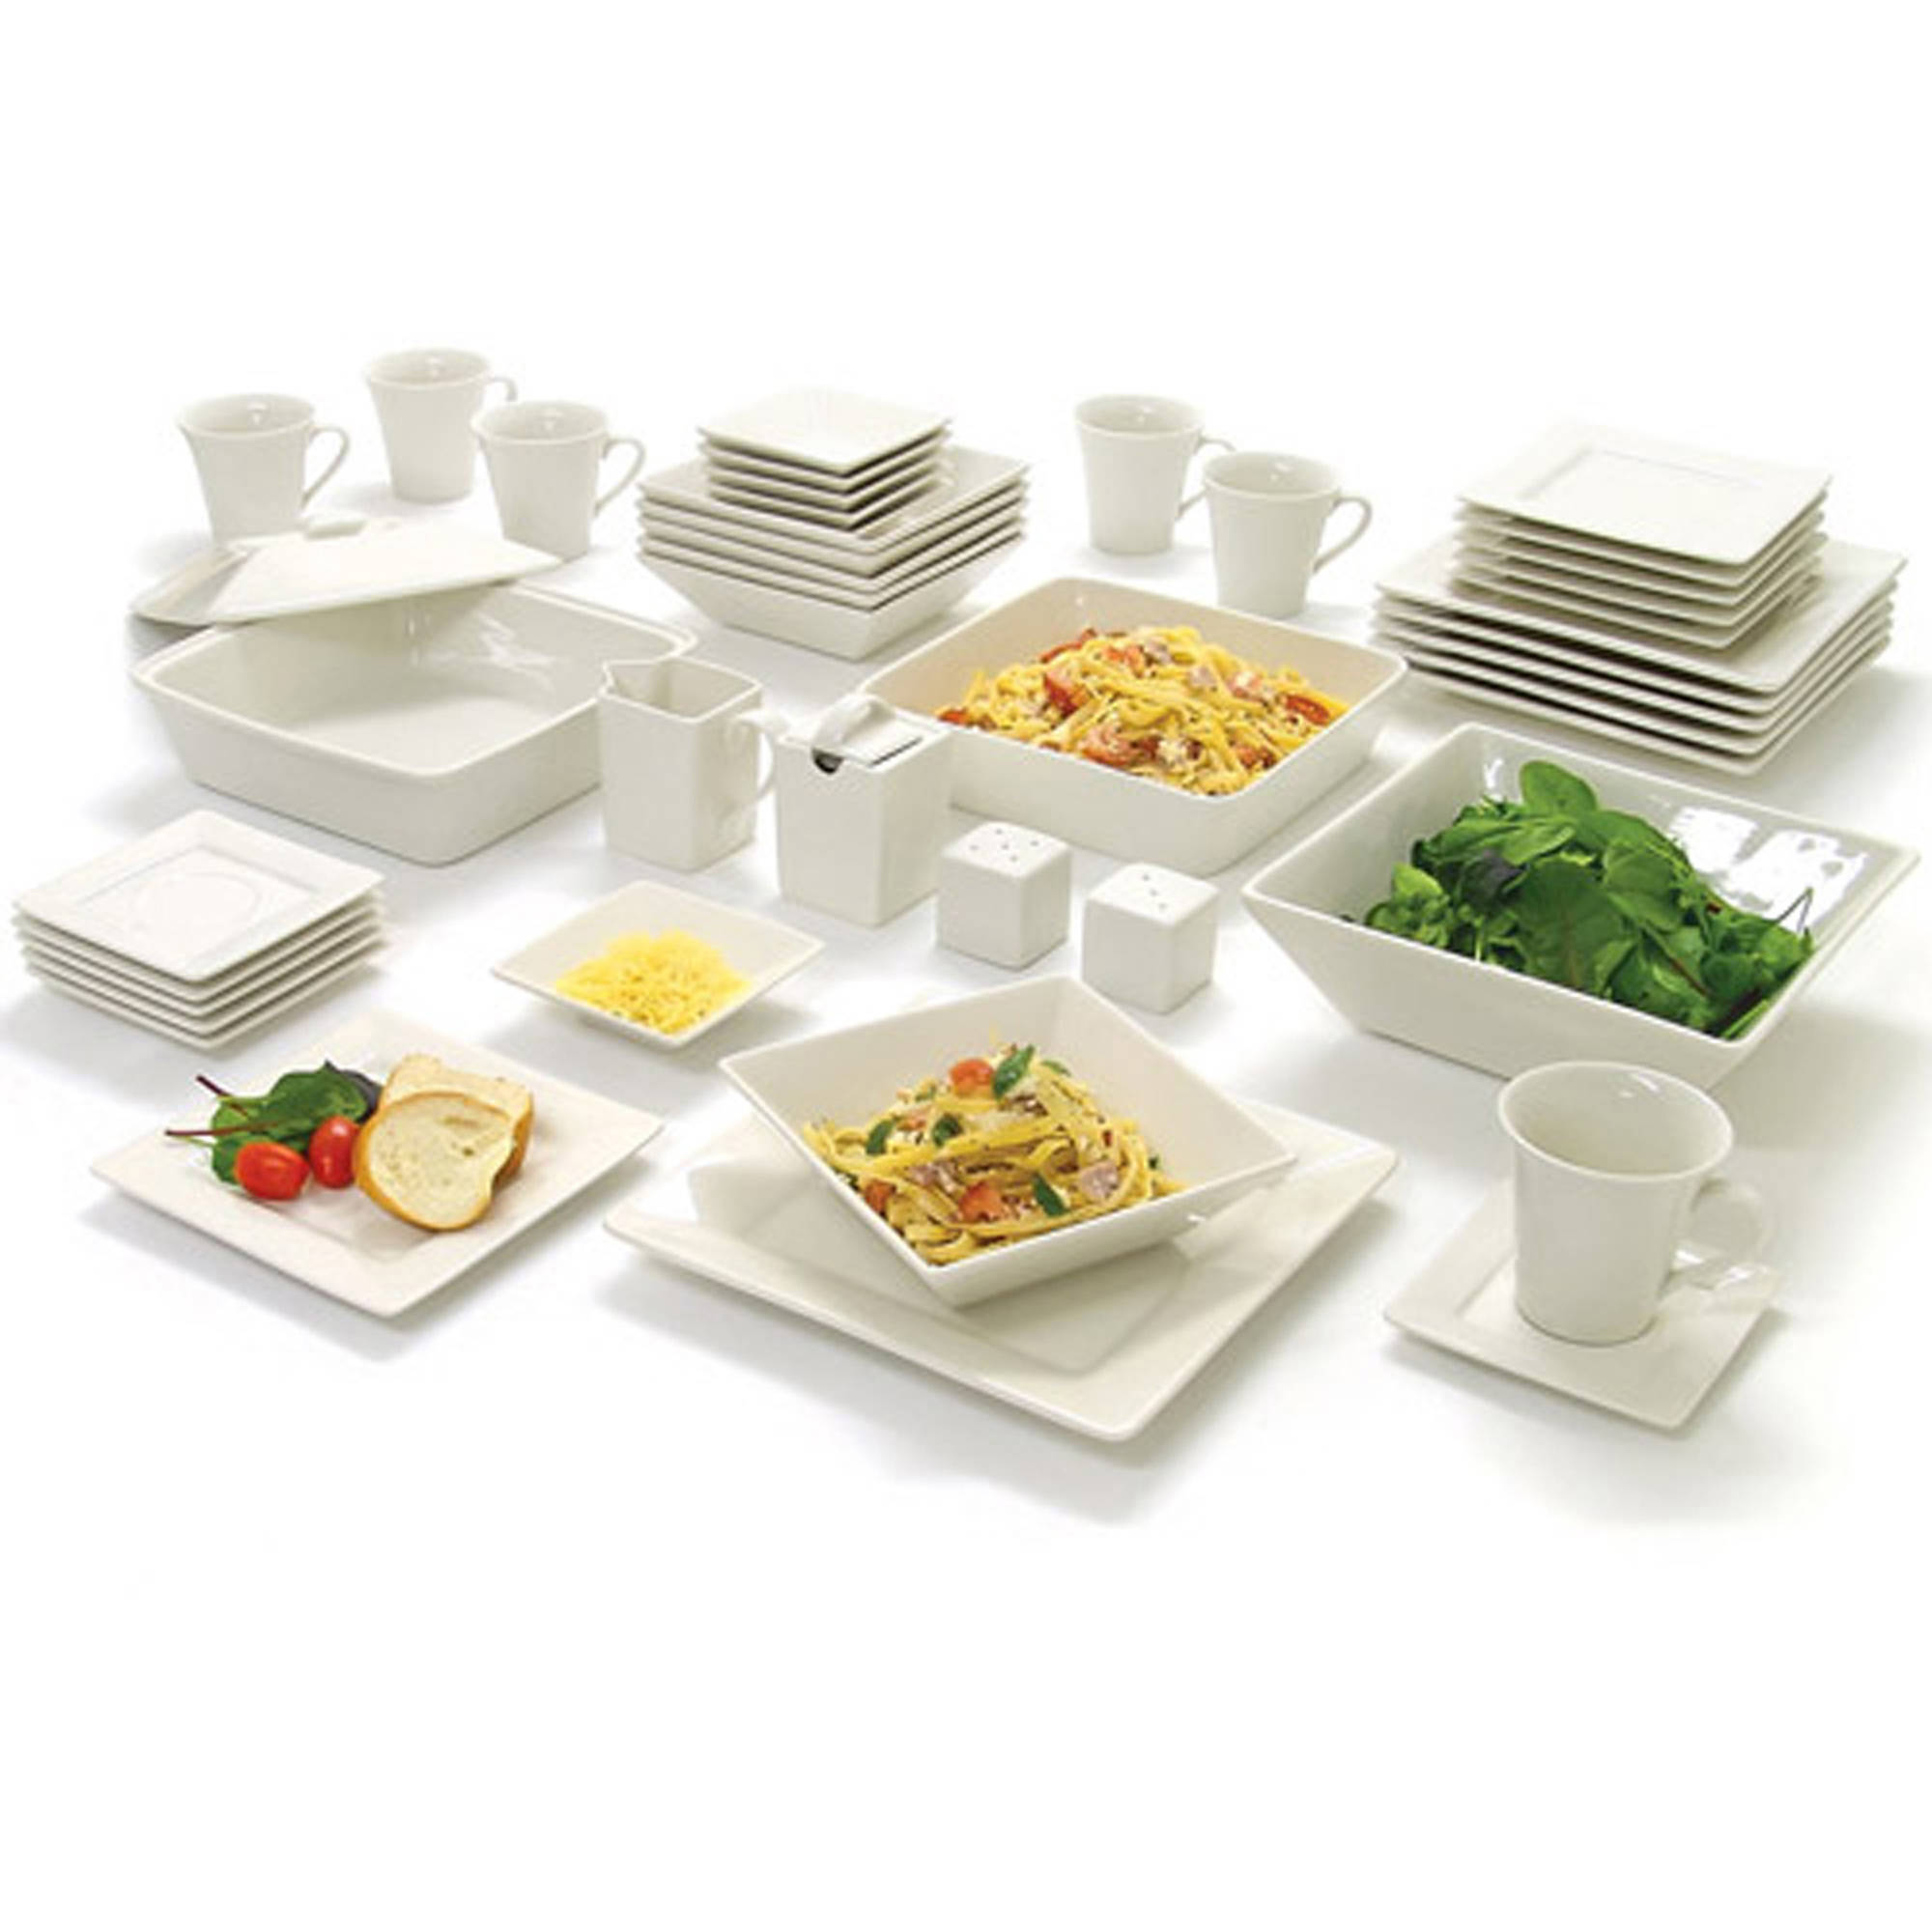 10 Strawberry Street Nova Square Banquet 45-Piece Dinnerware Set